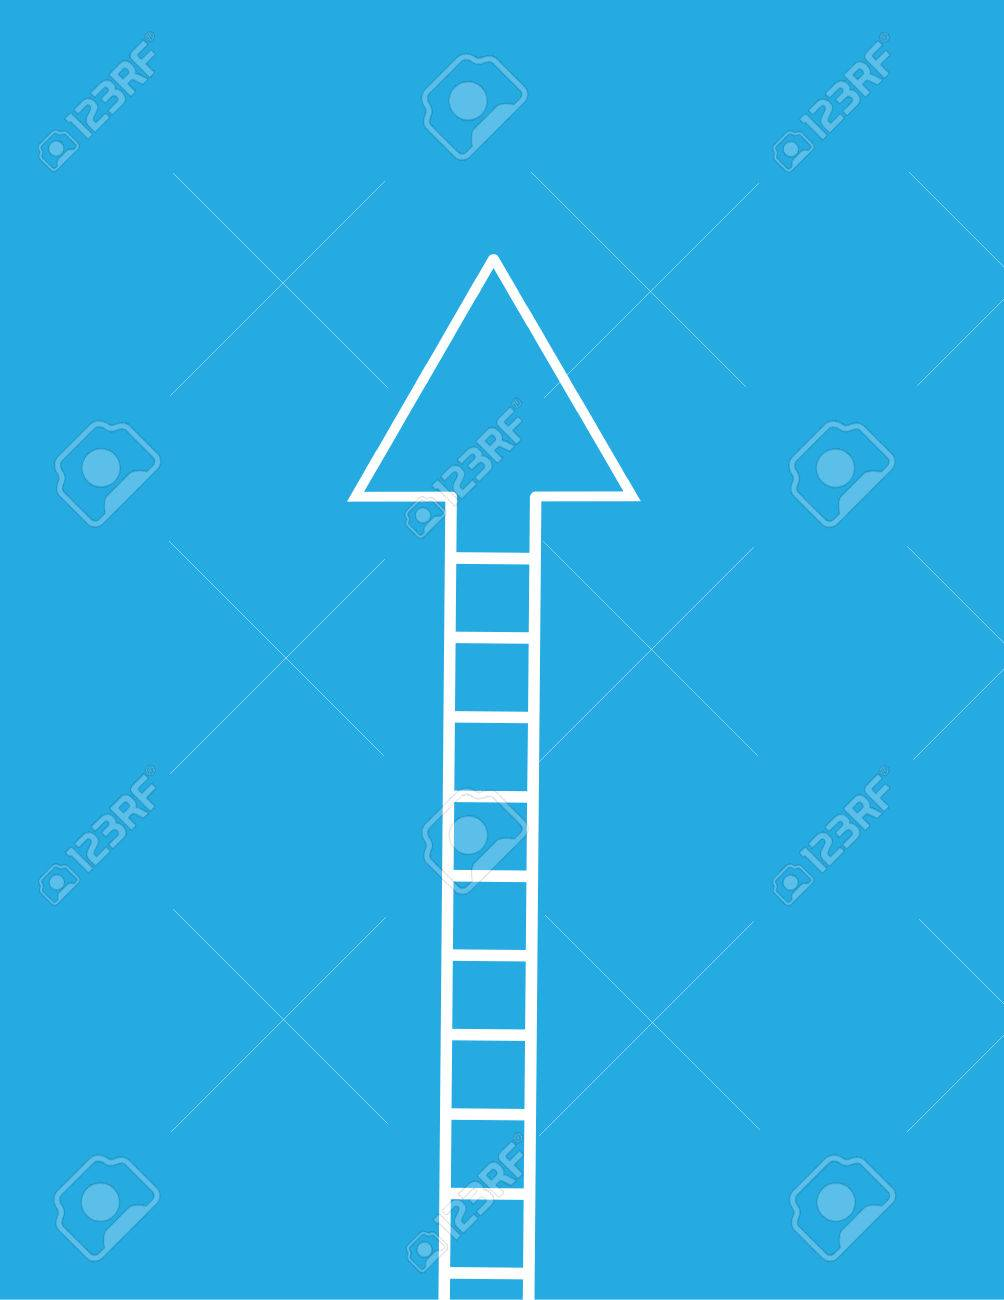 ladder with arrow pointing up royalty free cliparts vectors and